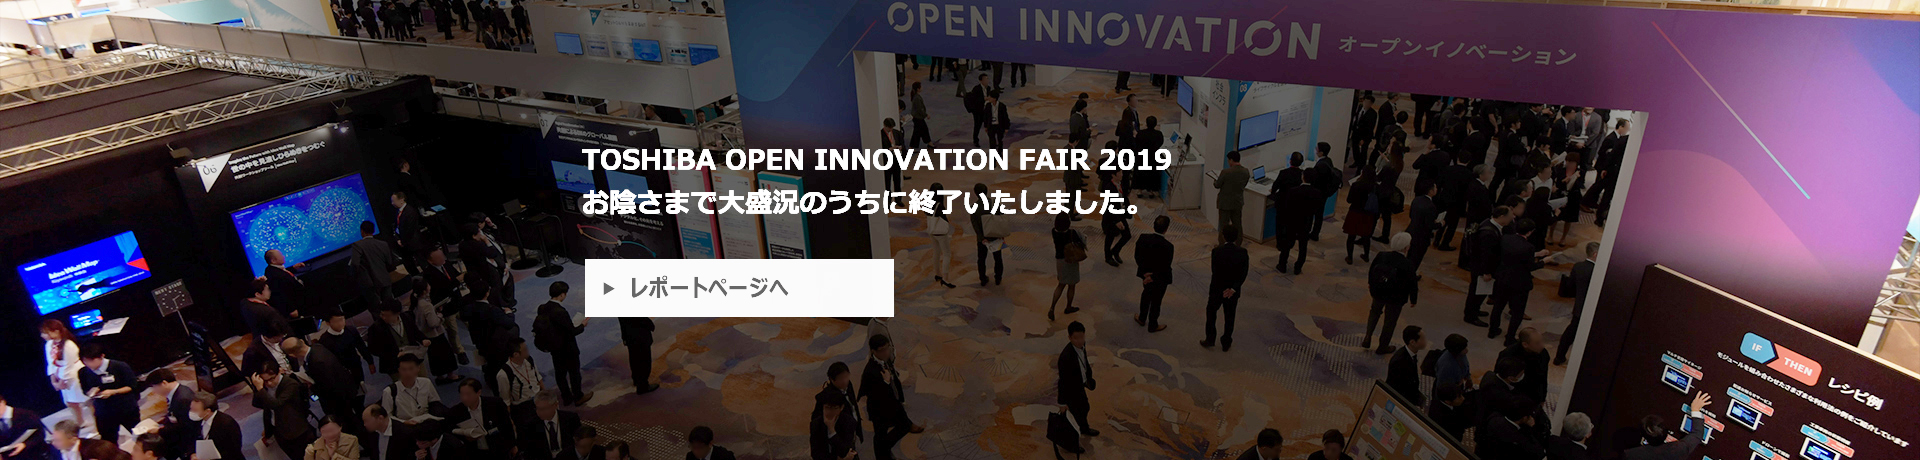 OPEN INNOVATION FAIR 2019レポート